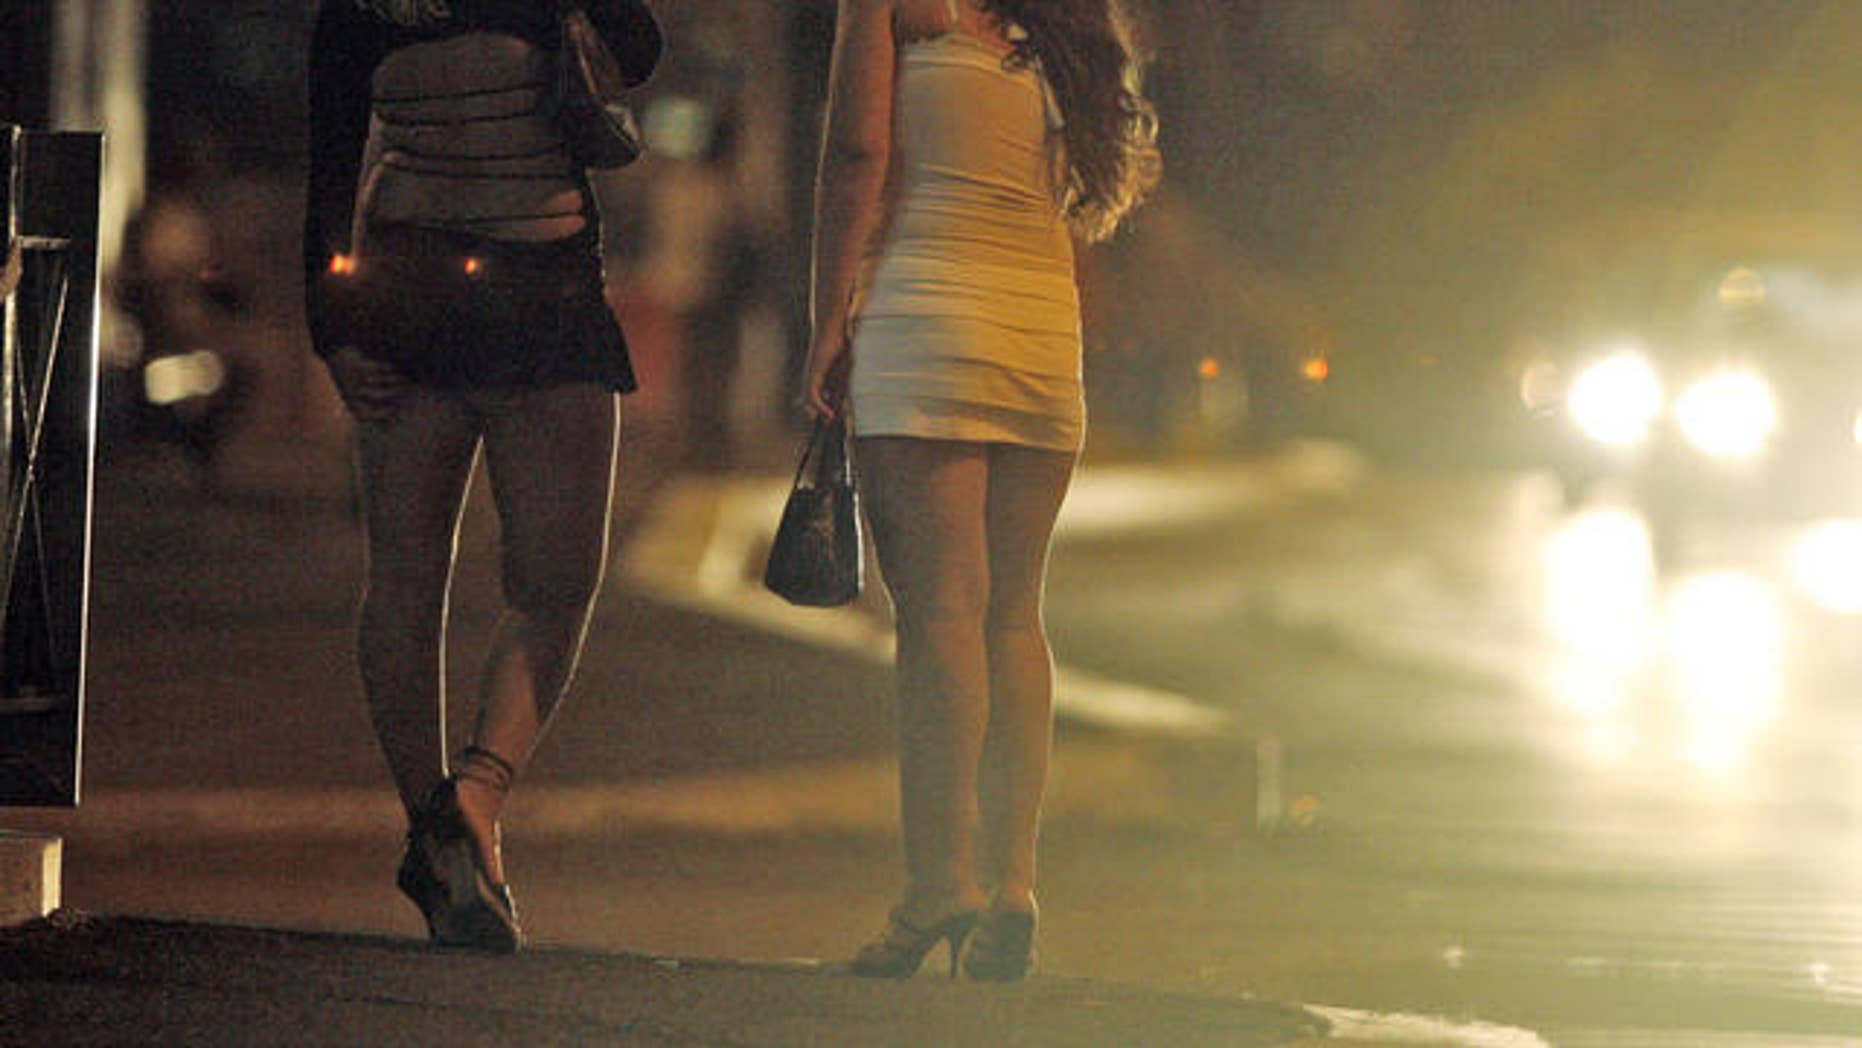 Prostitutes are seen in Rome in this July 3, 2007 photo.  Italian law gives foreign prostitutes a chance to escape human traffickers who force young women from poor countries to sell their bodies to pay for their passage into Western Europe. While some other European nations also have laws to help trafficked prostitutes, Italy's legislation stands out because of its elasticity: Women are encouraged, but not required, to testify against their traffickers.    (AP Photo/Andrew Medichini)